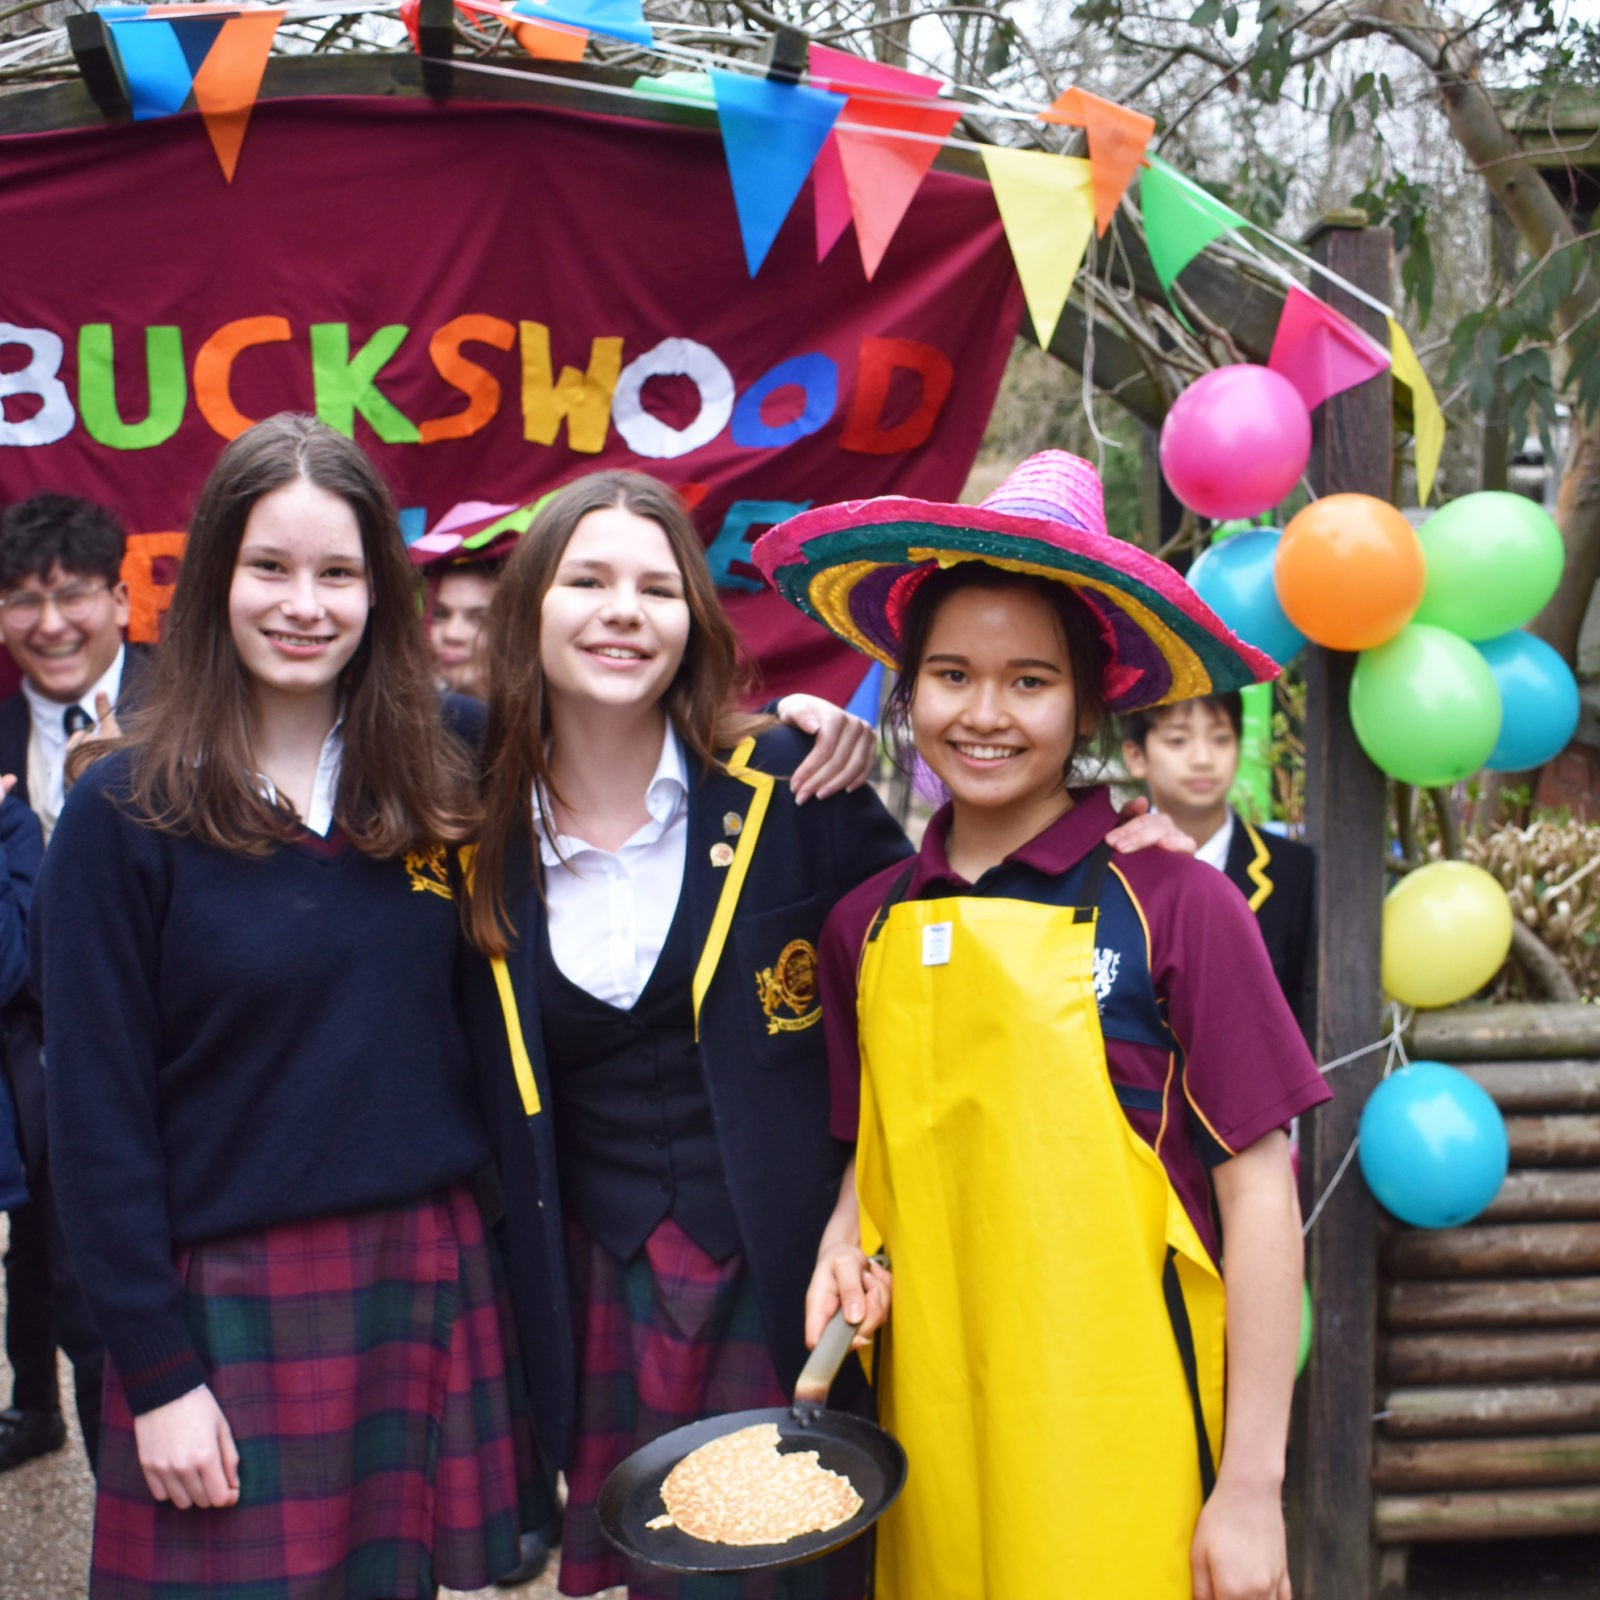 Flipping for success at Buckswood for Shrove Tuesday